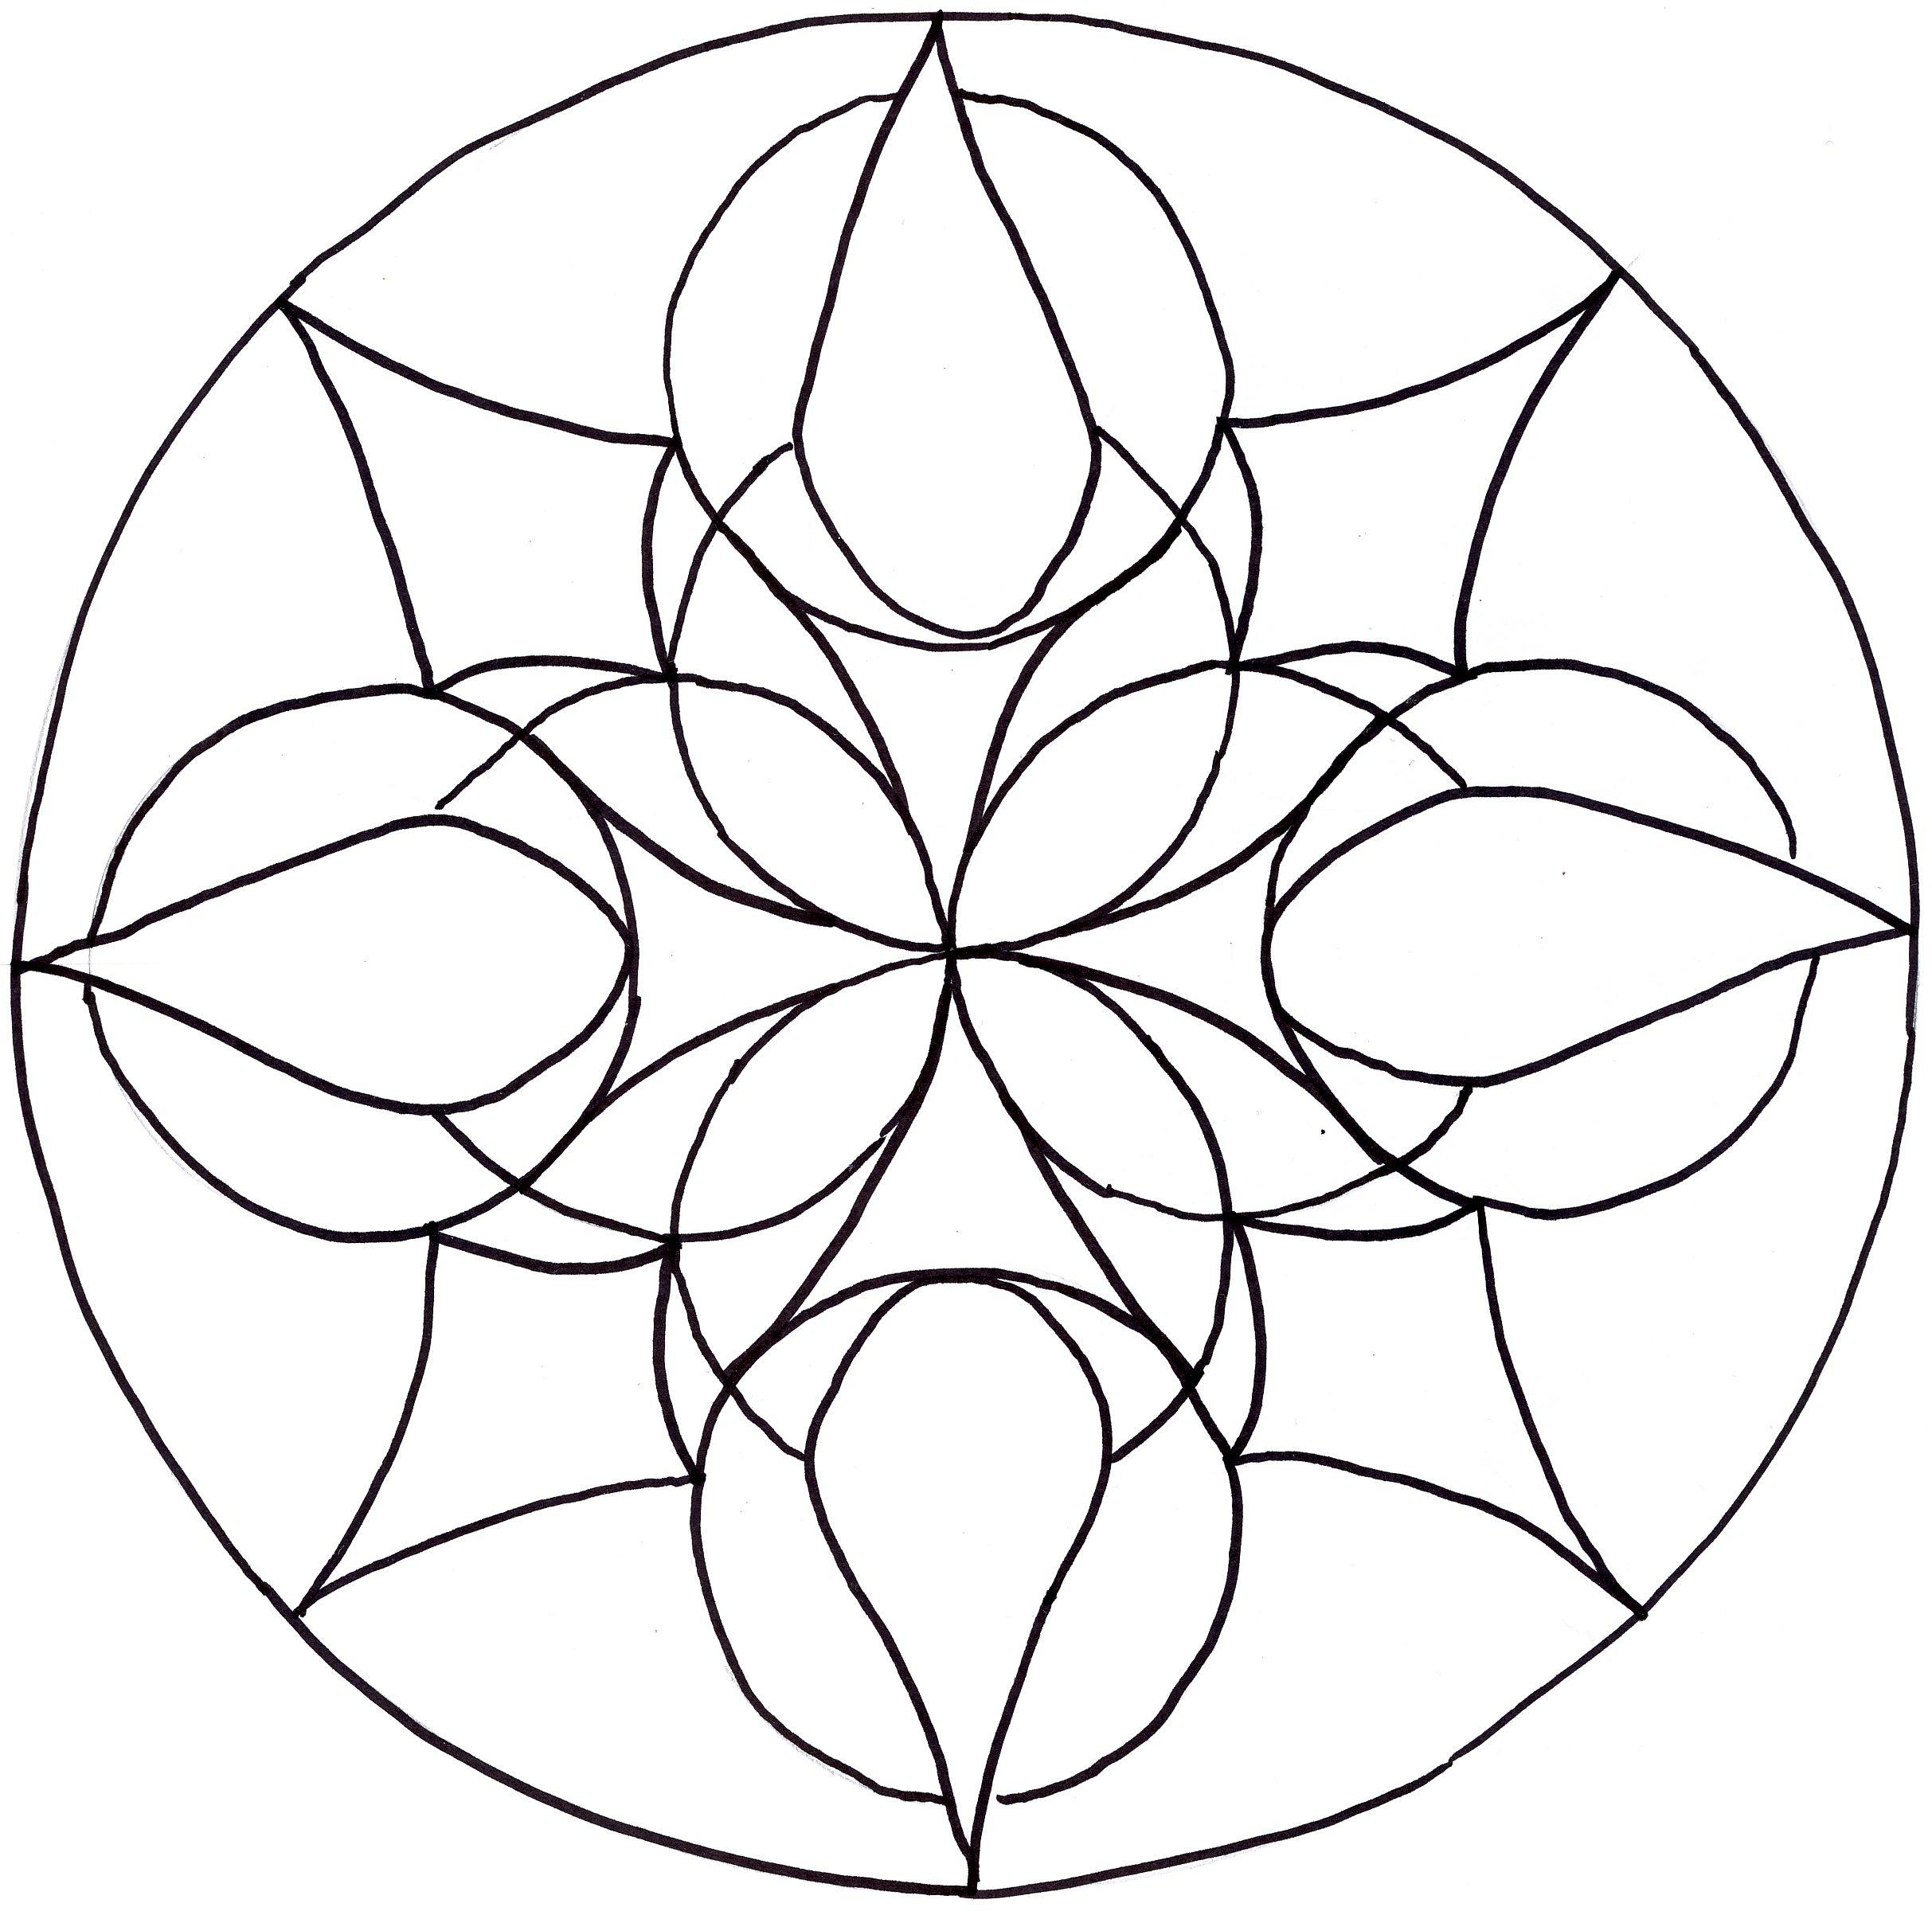 Easy Mandala Drawing At Getdrawings Com Free For Personal Use Easy